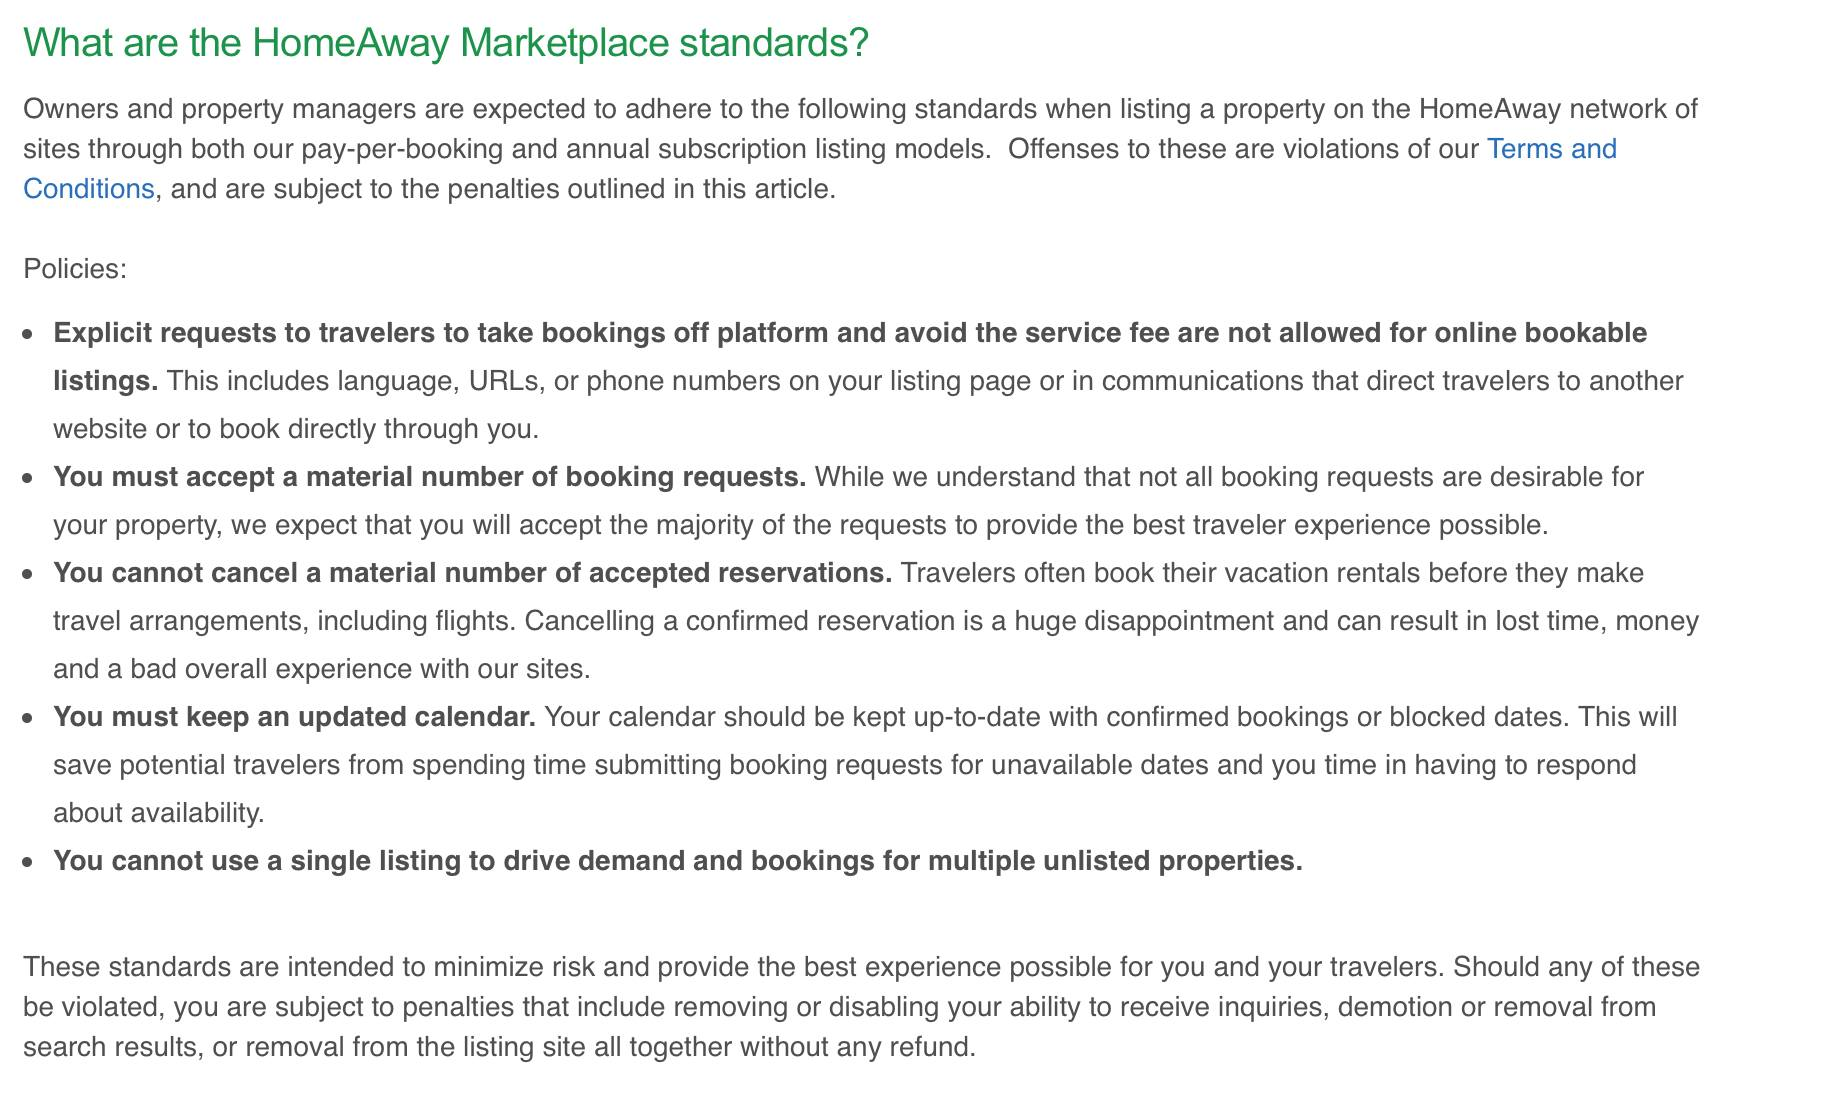 homeaway-market-standards